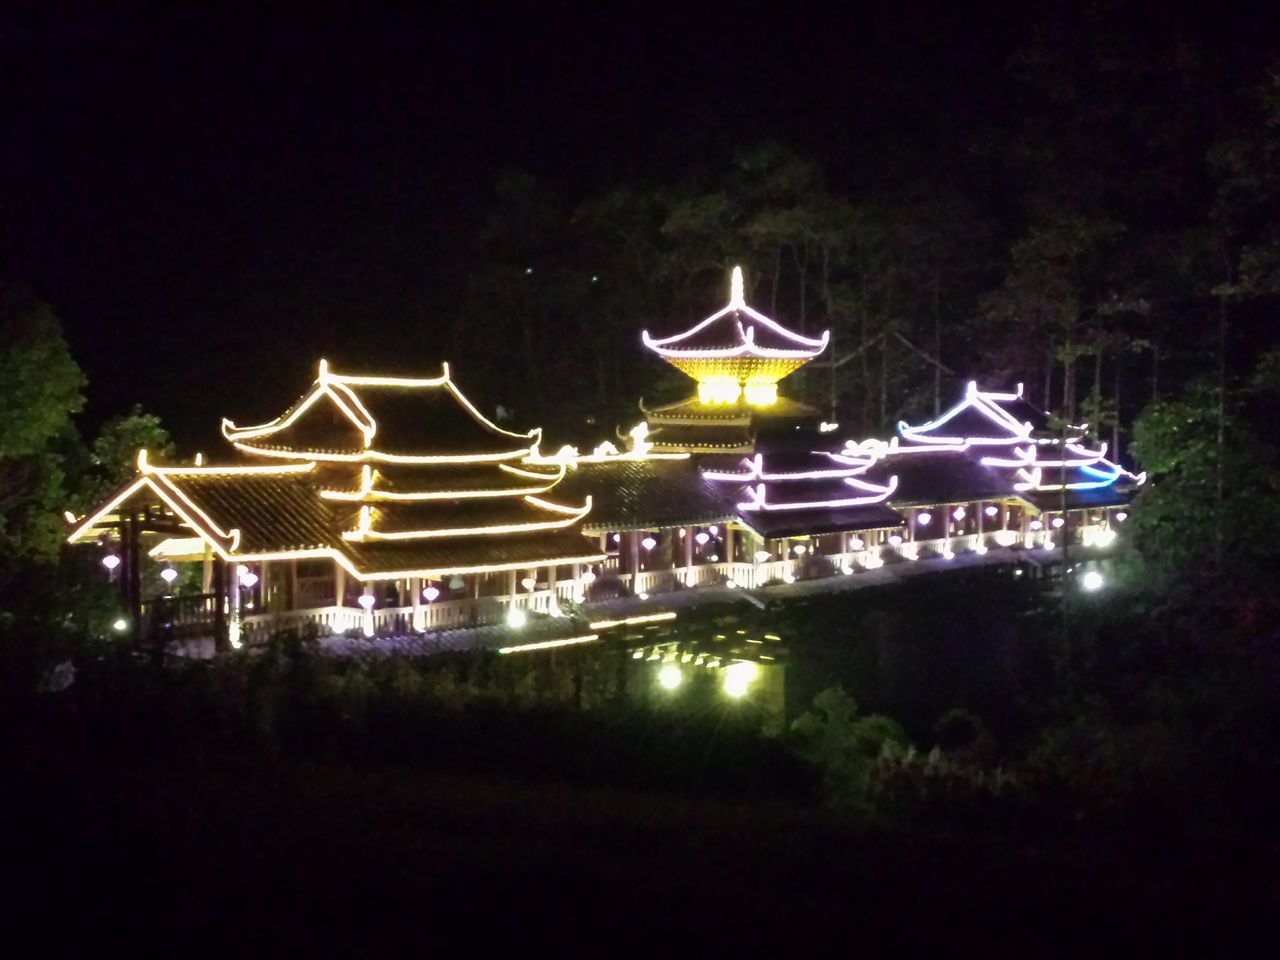 night, illuminated, outdoors, no people, architecture, built structure, building exterior, water, nature, sky, carousel